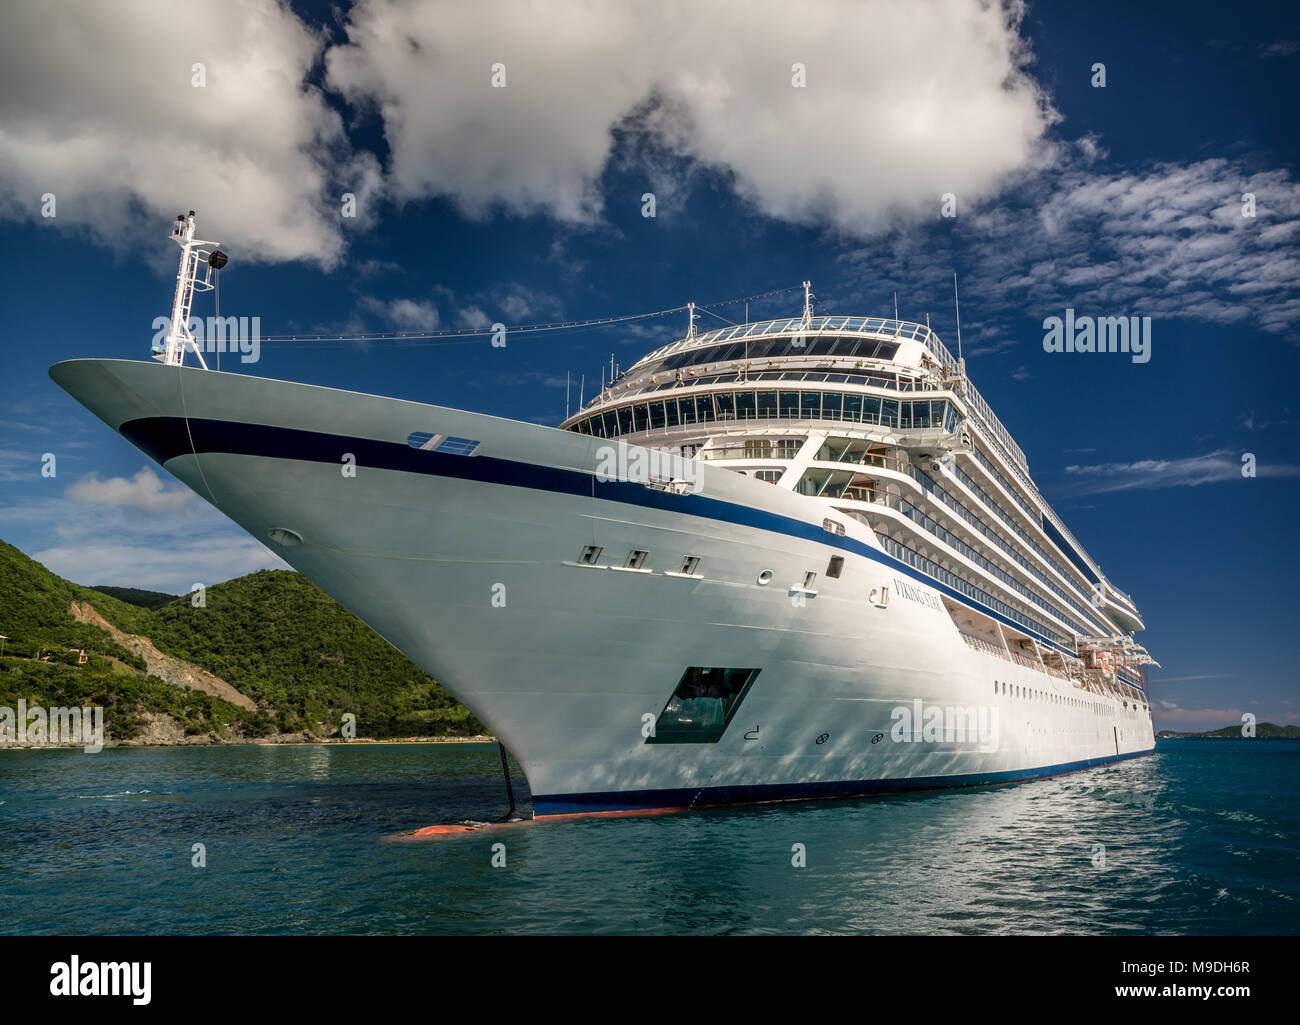 Cruise ship 'Viking Star' anchored off Road Town on the island of Tortola - Stock Image